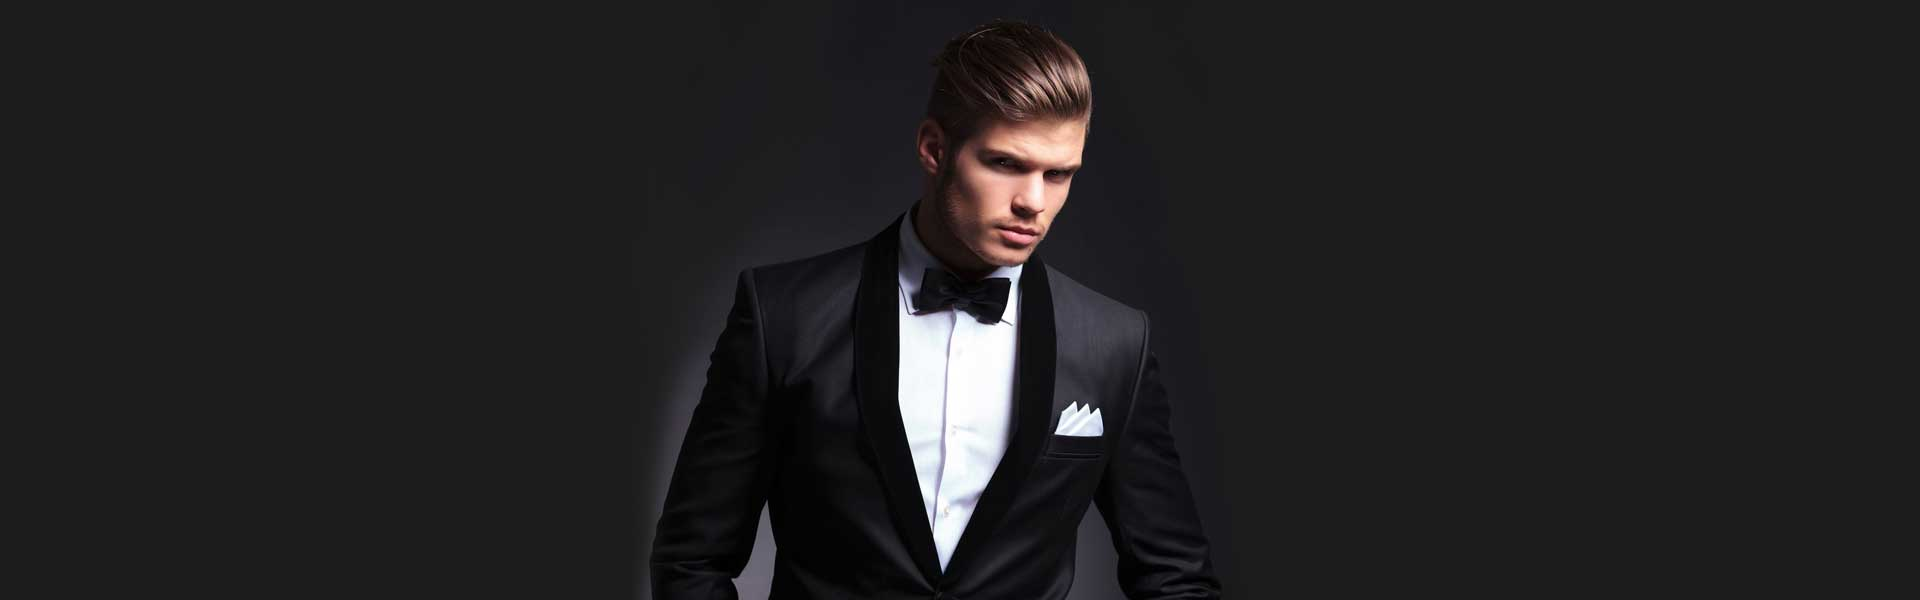 tuxedo-suit-dry-cleaning